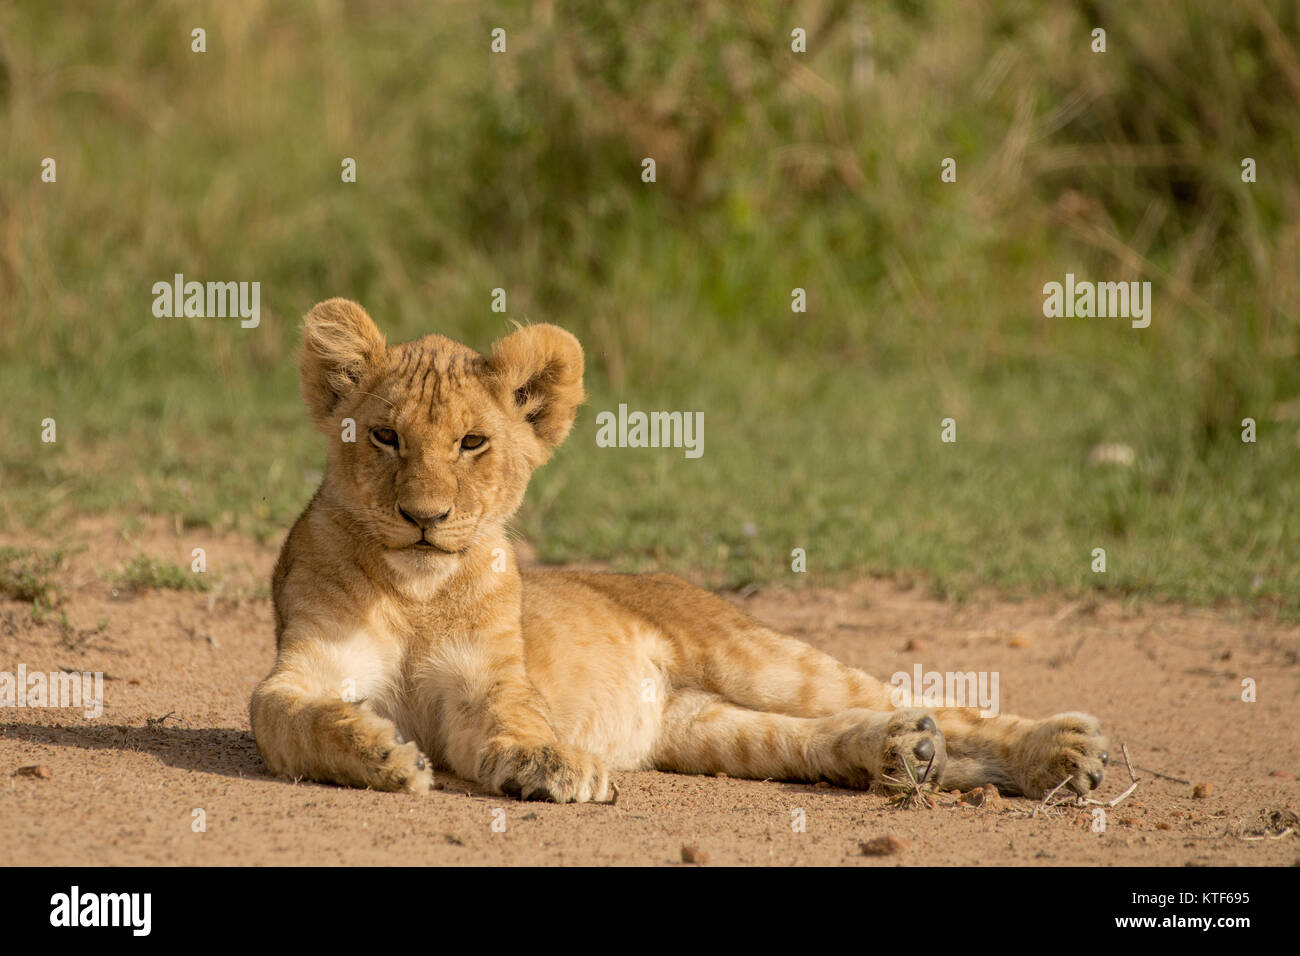 Young male lion (Panthera leo) cub lying on sandy patch and staring ahead. - Stock Image